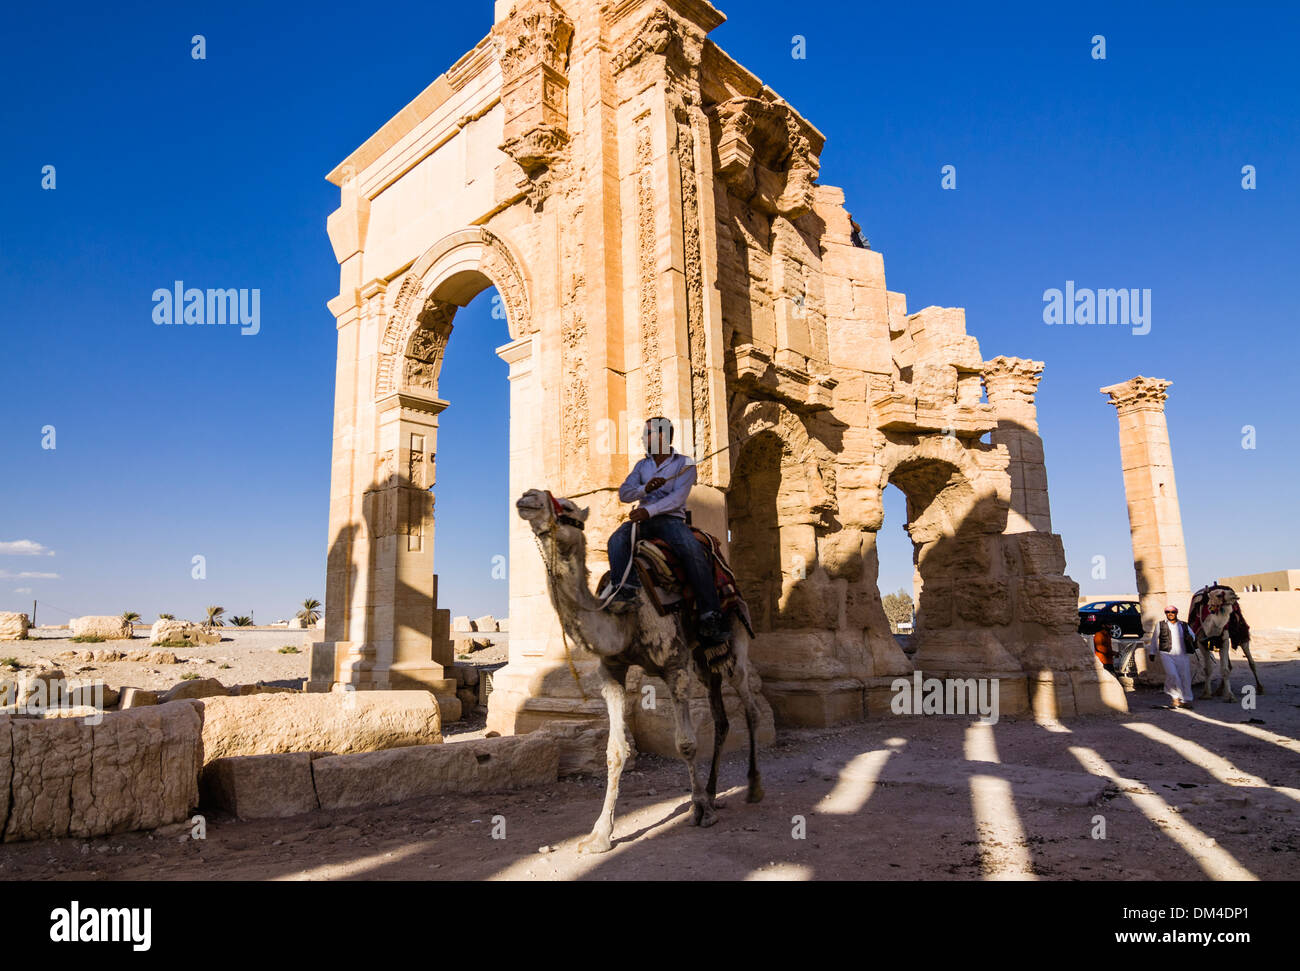 Man on camel beside the monumental arch of the ruins at Palmyra, Syria Stock Photo